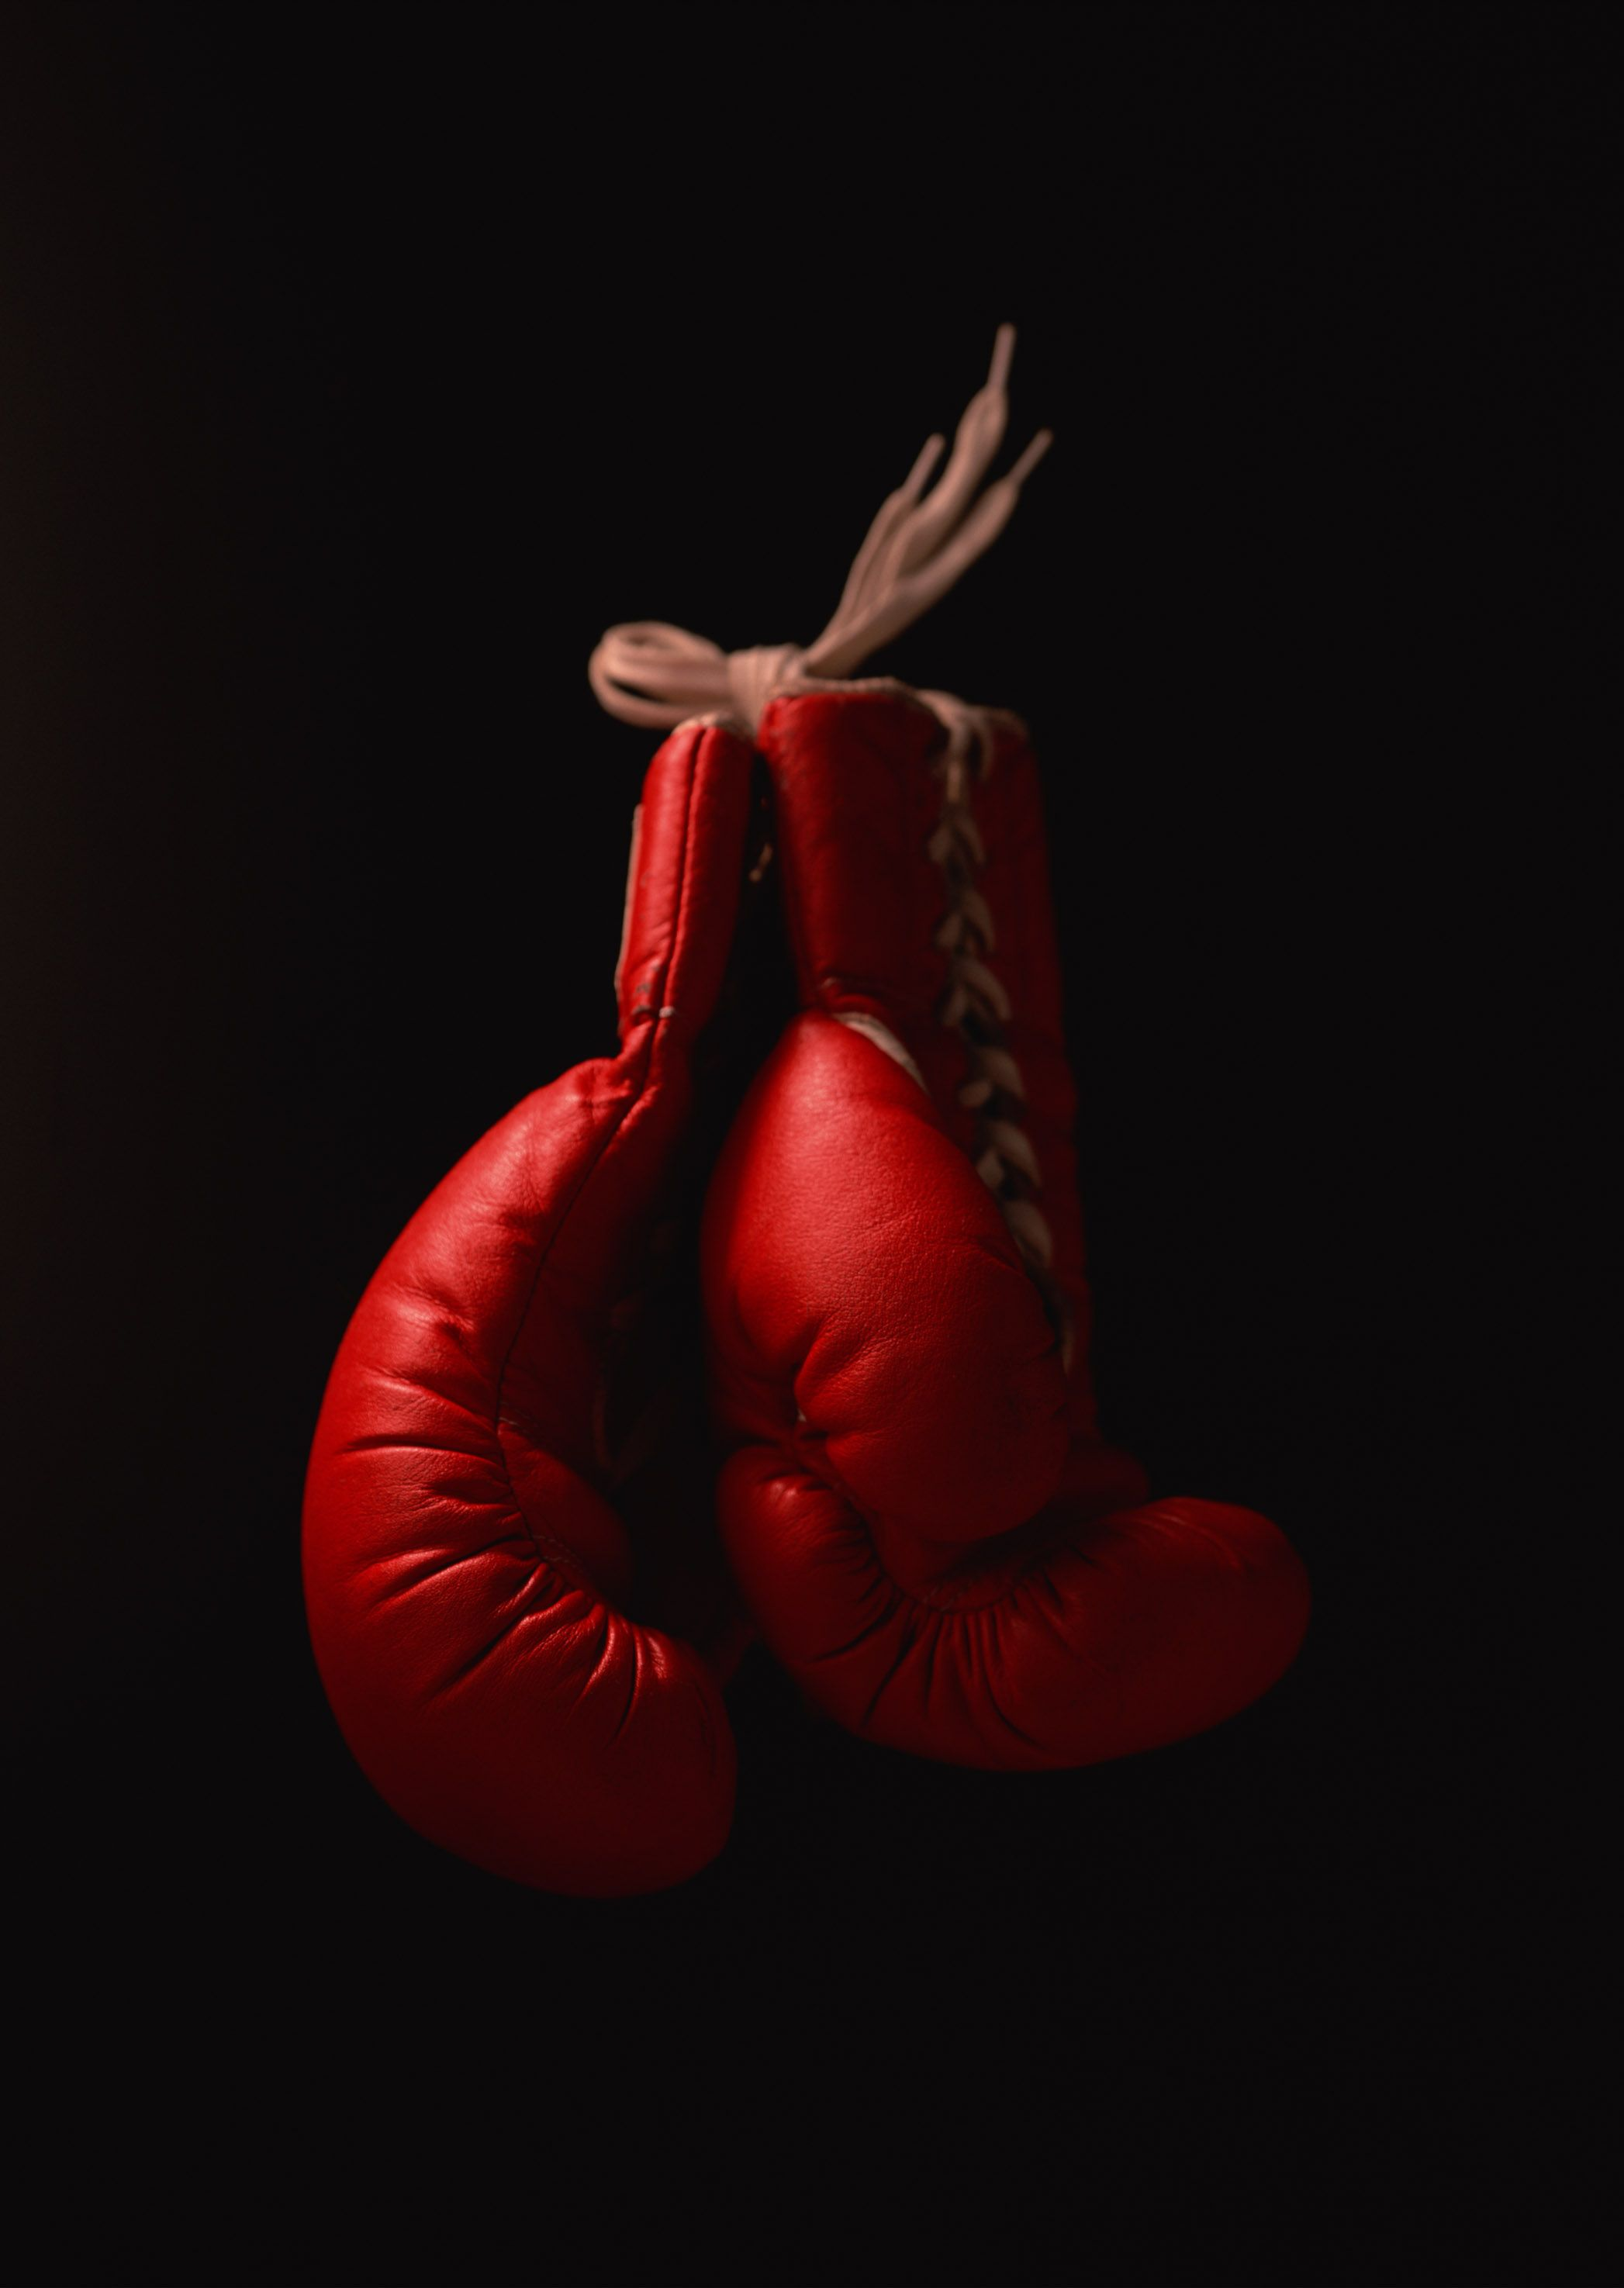 Download this awesome wallpaper  Kickboxing 2094x2950